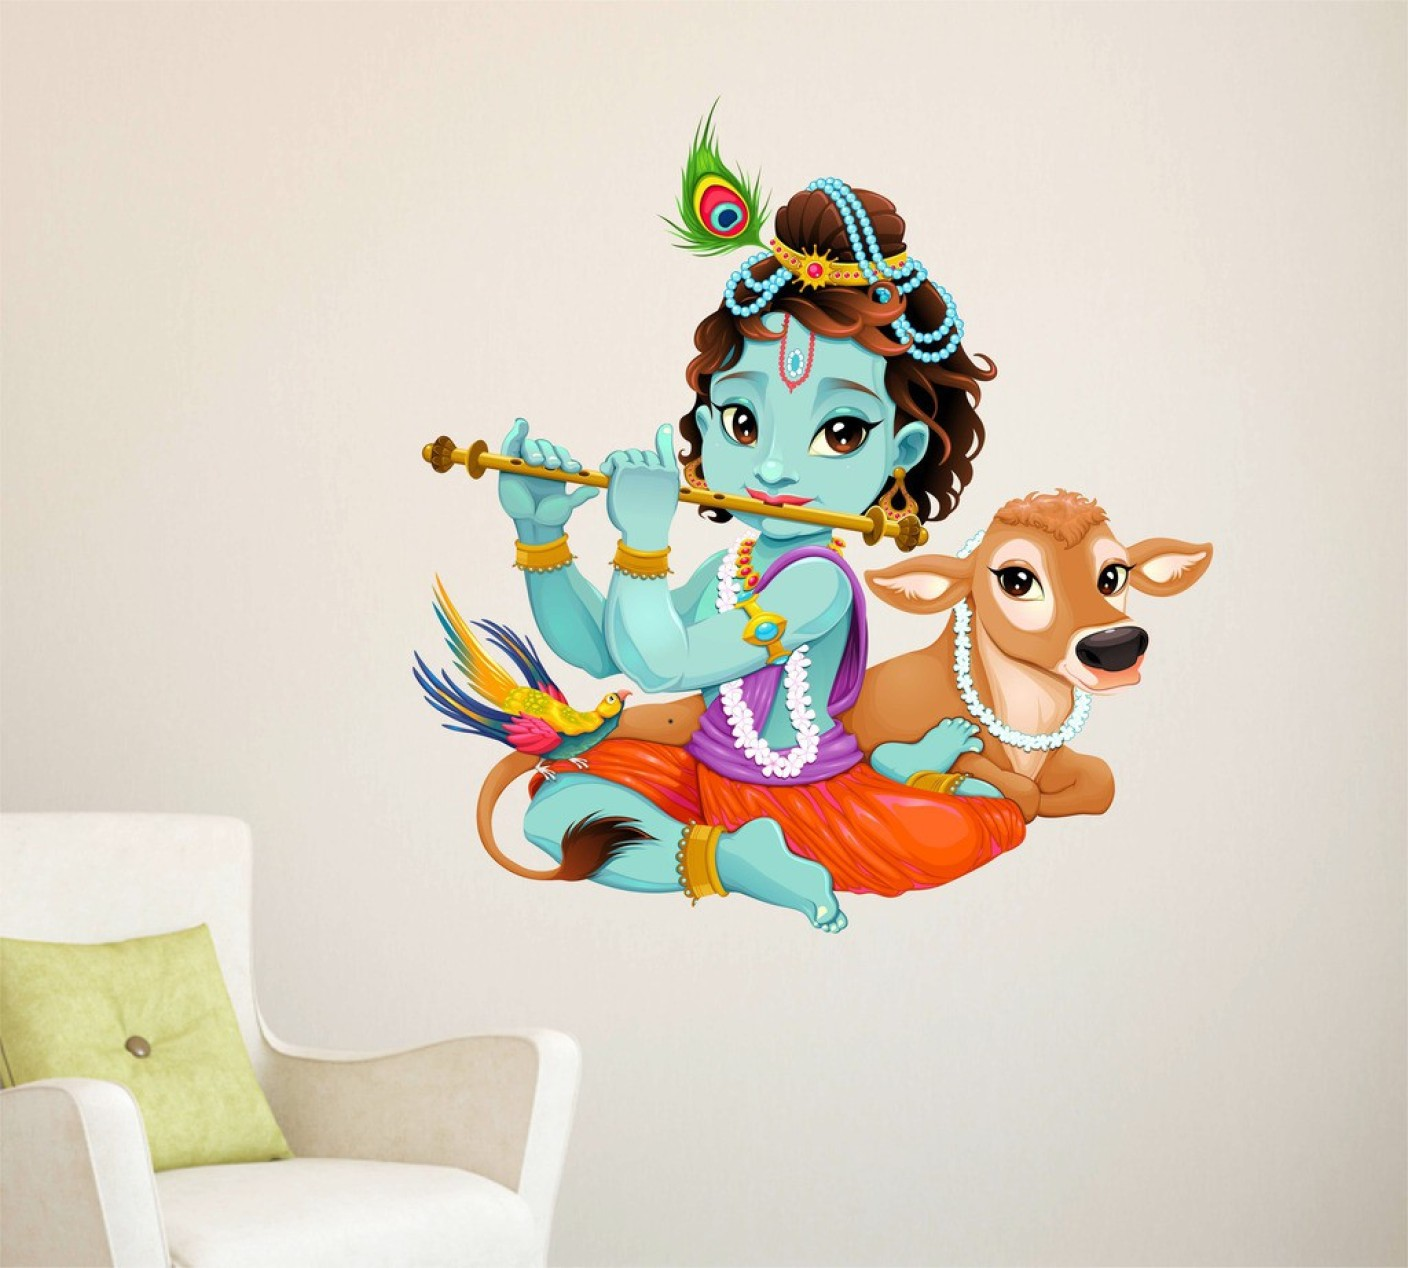 Aquire Large Pvc Vinyl Sticker Price In India Buy Aquire